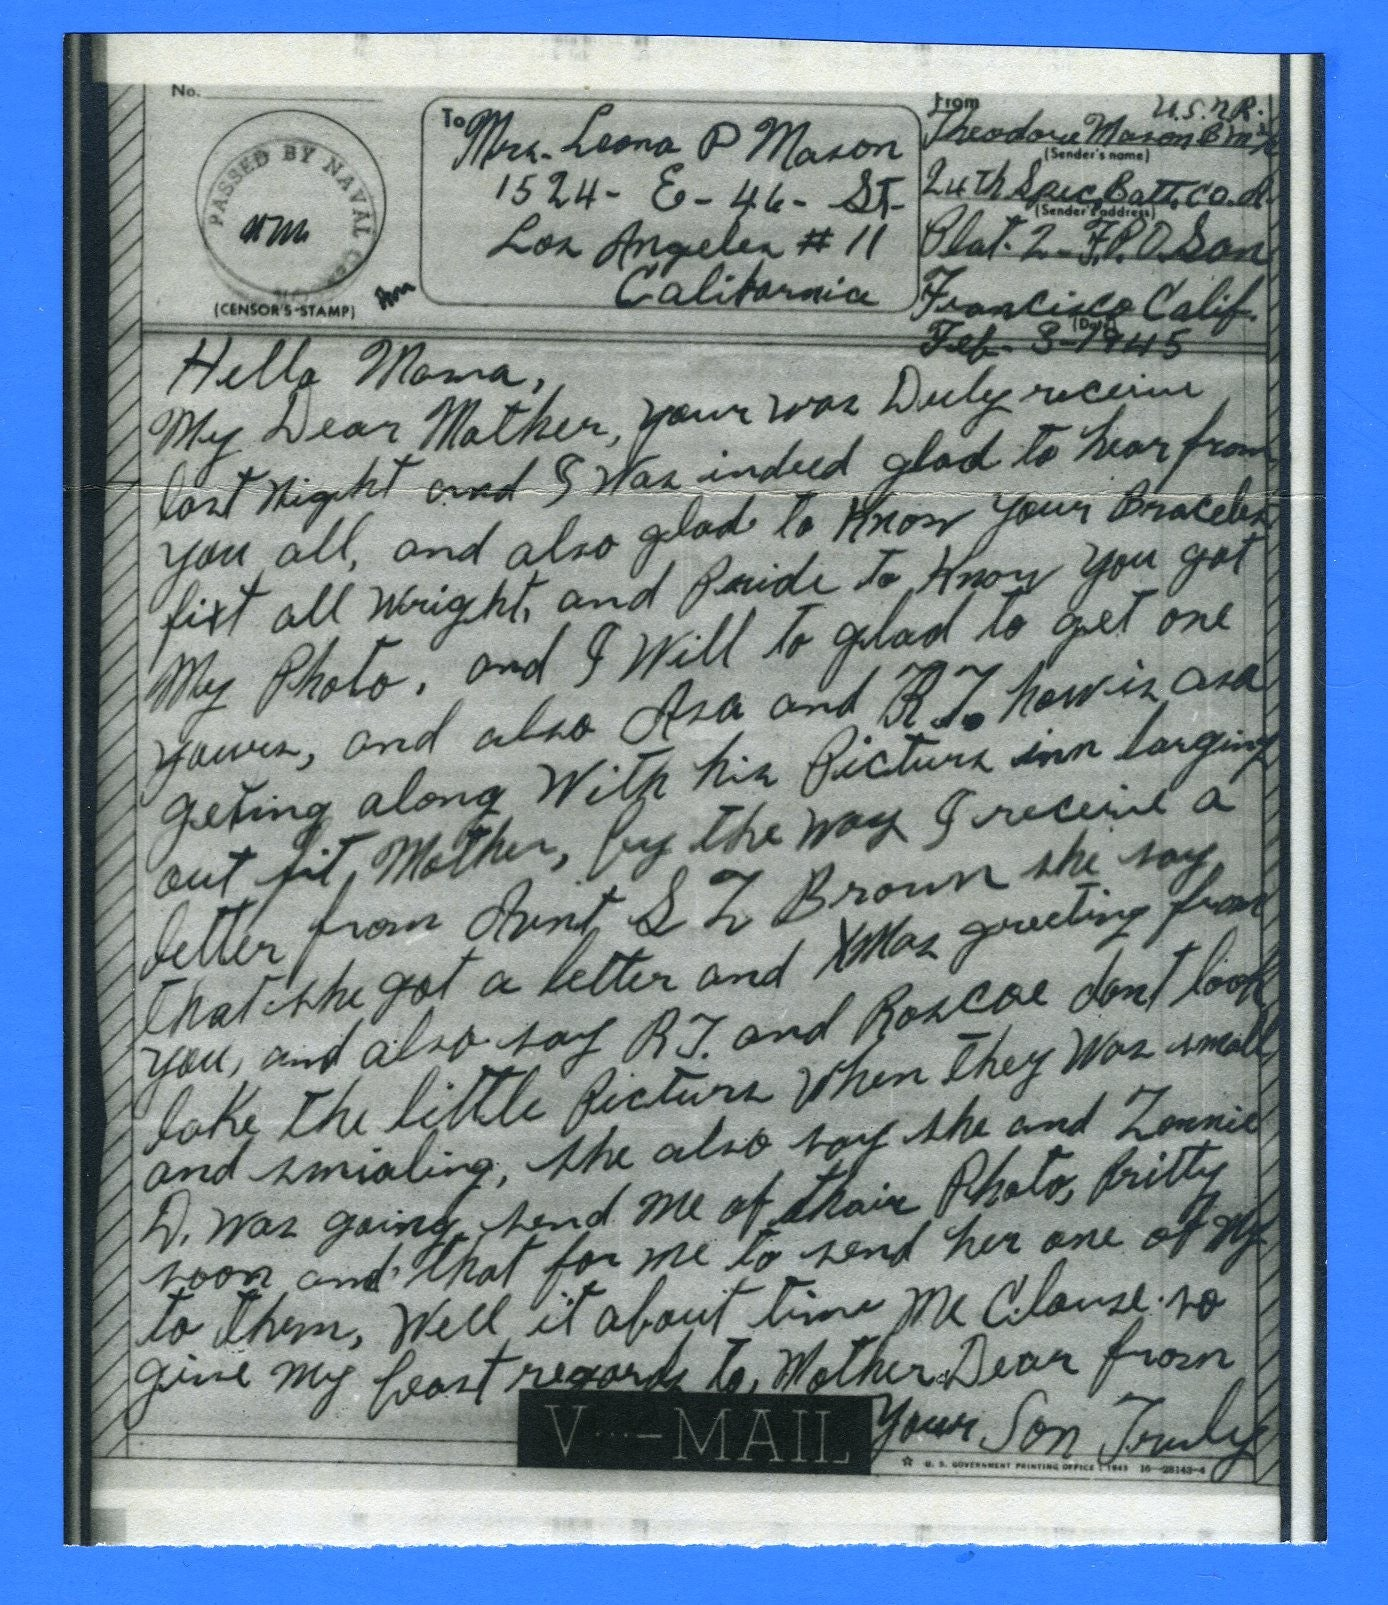 Seabee's Censored V Mail 24th Naval Construction Battalion Milne Bay, New Guinea February 3, 1945